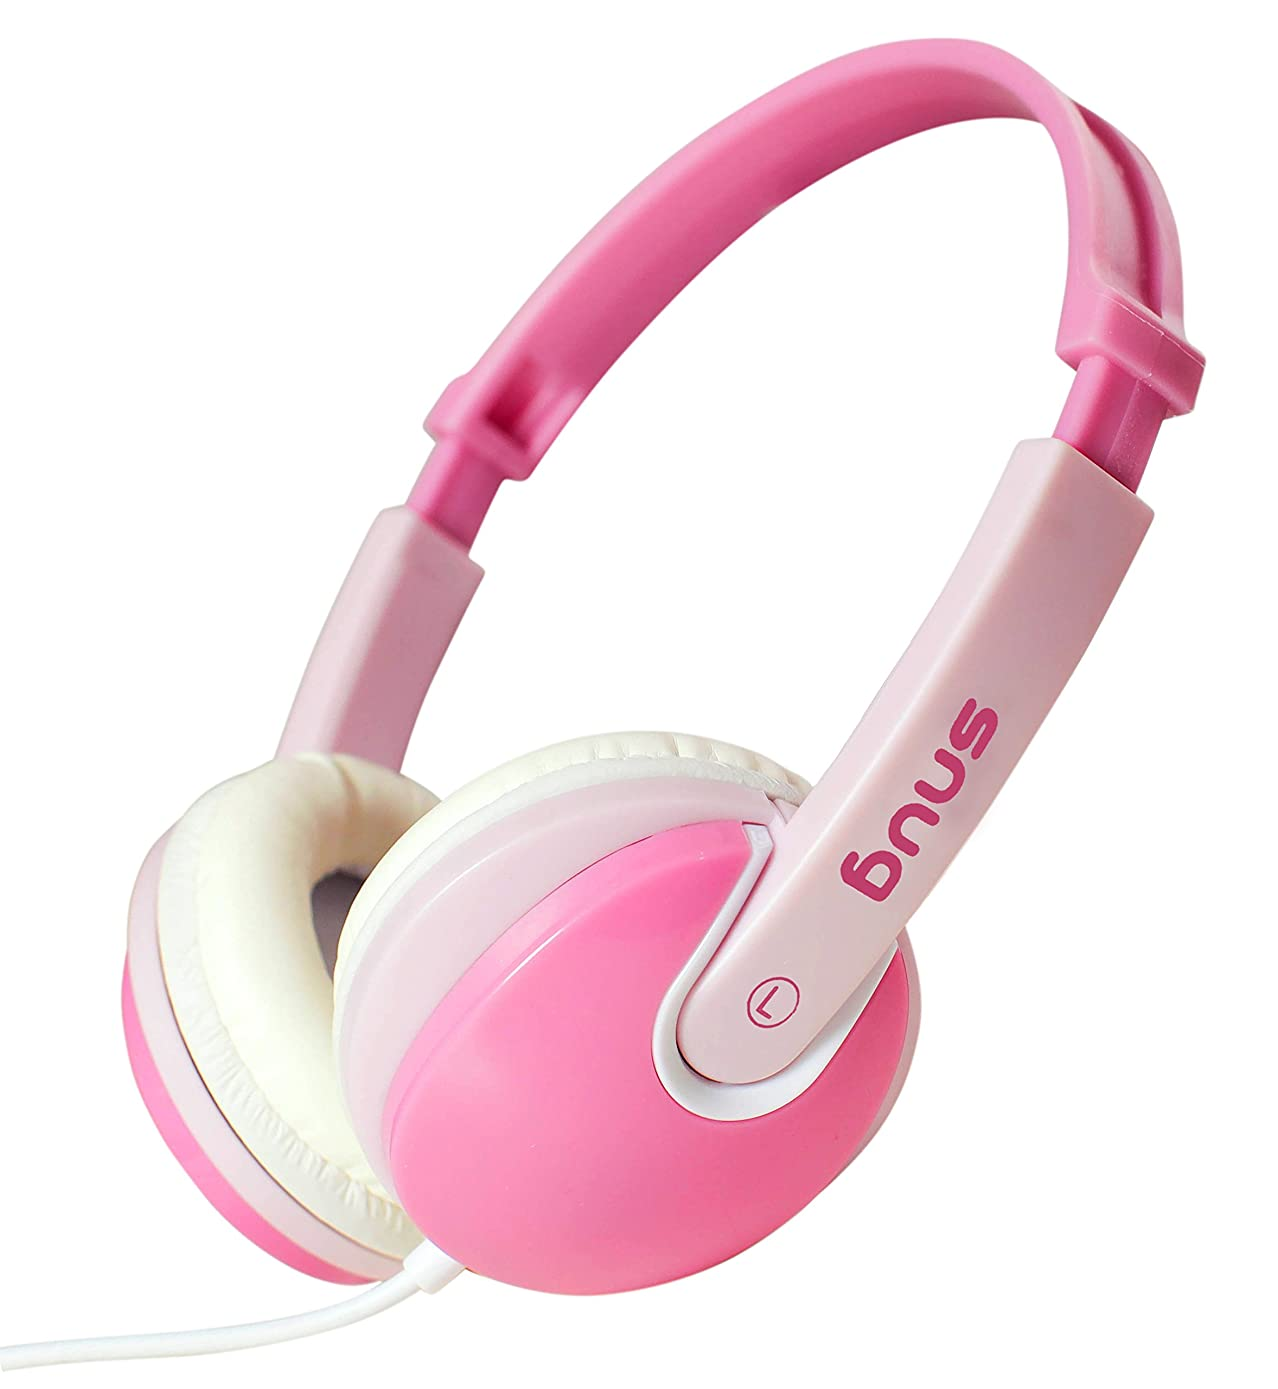 Snug Plug n Play Kids Headphones for Children DJ Style (Pink)